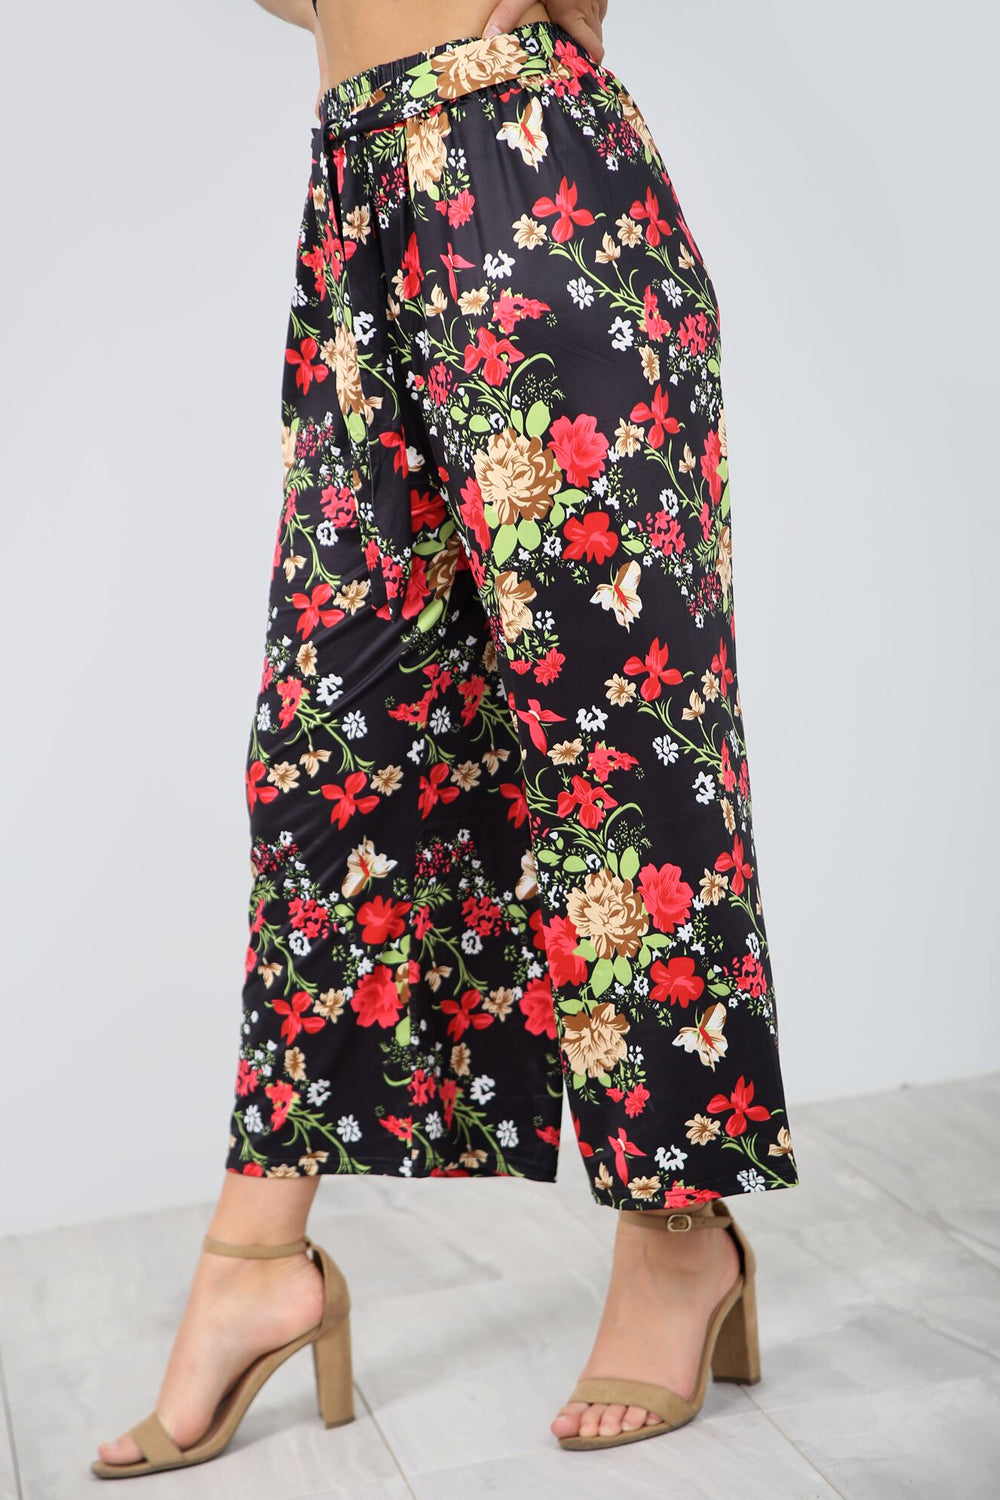 High Waist Floral Print Cropped Leg Trousers - bejealous-com